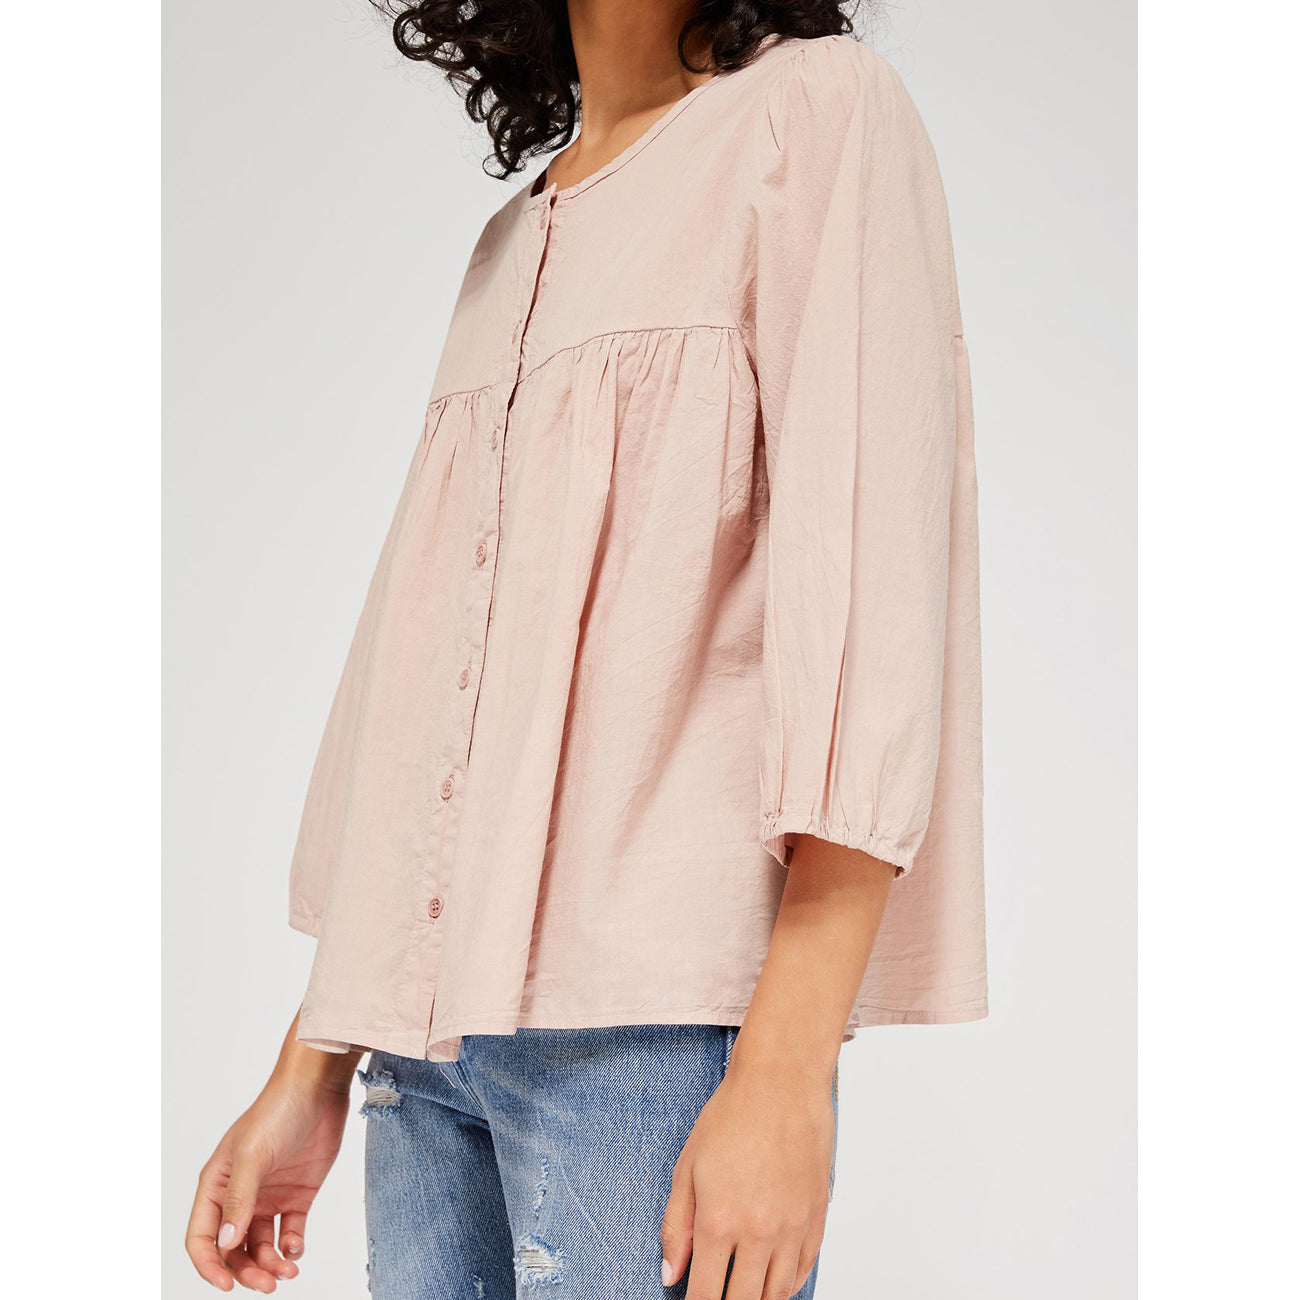 Lacausa Hayden Blouse in Muse